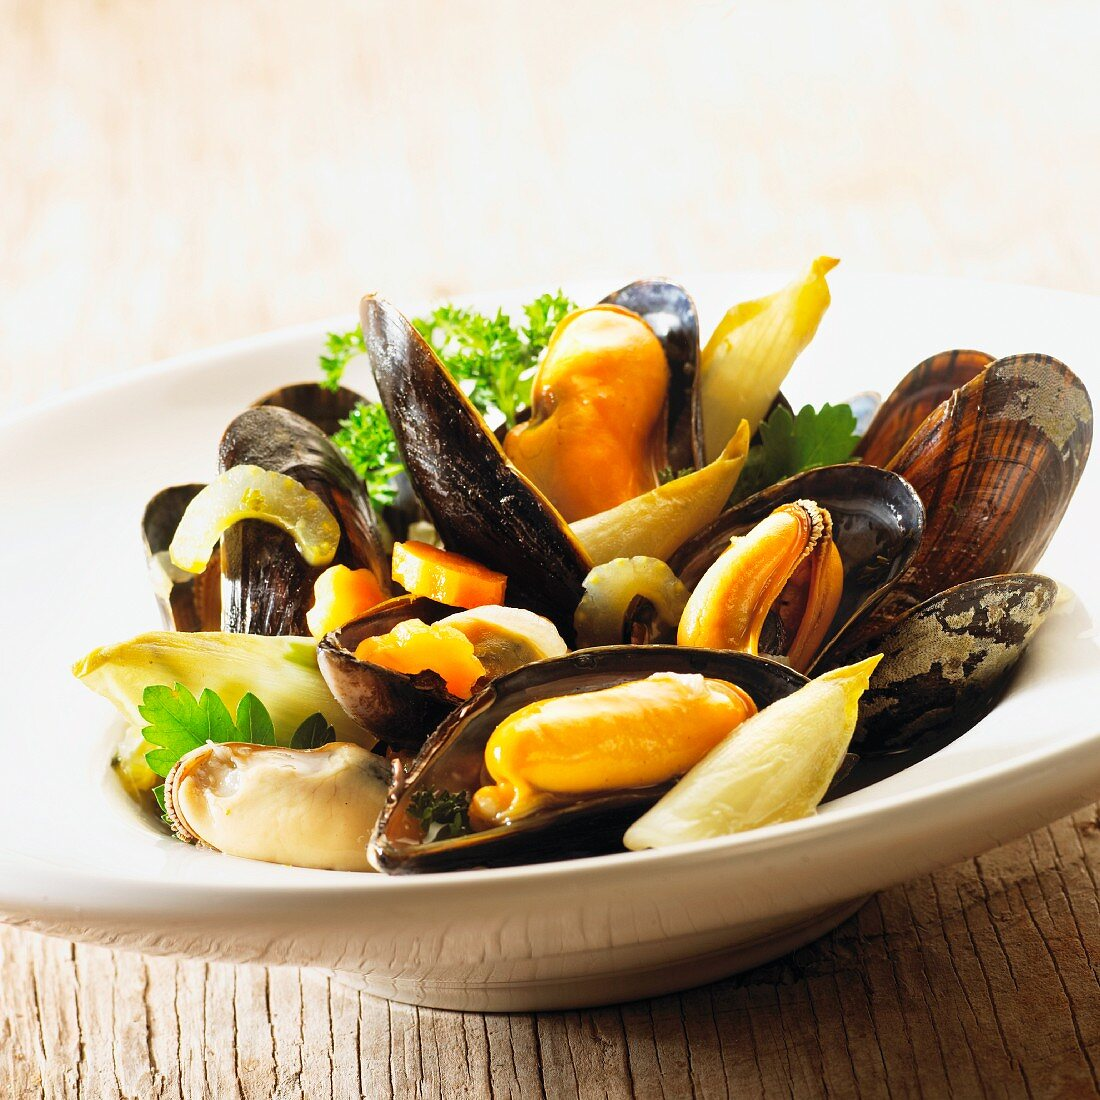 Mussels with chicory in a wheat beer broth